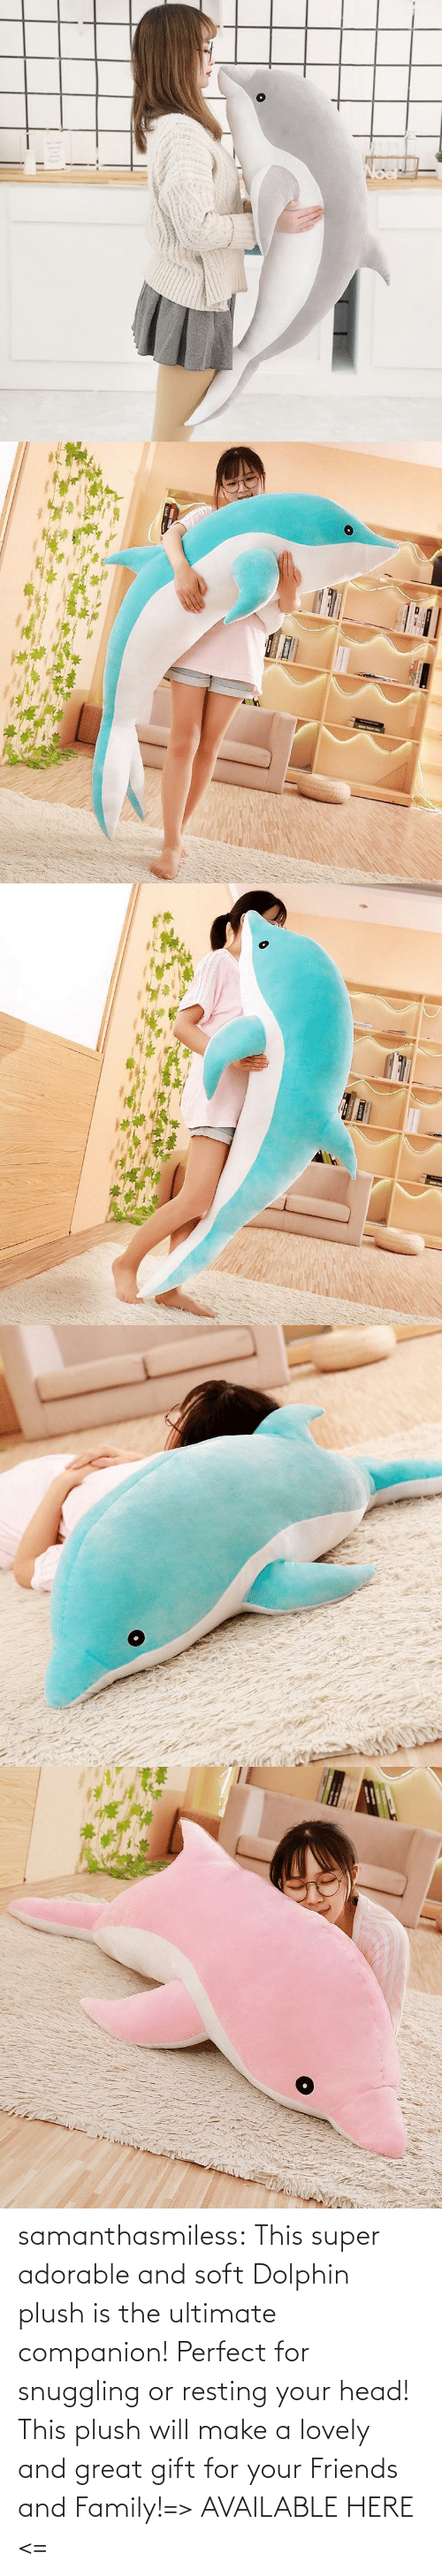 Adorable: samanthasmiless:  This super adorable and soft Dolphin plush is the ultimate companion! Perfect for snuggling or resting your head! This plush will make a lovely and great gift for your Friends and Family!=> AVAILABLE HERE <=